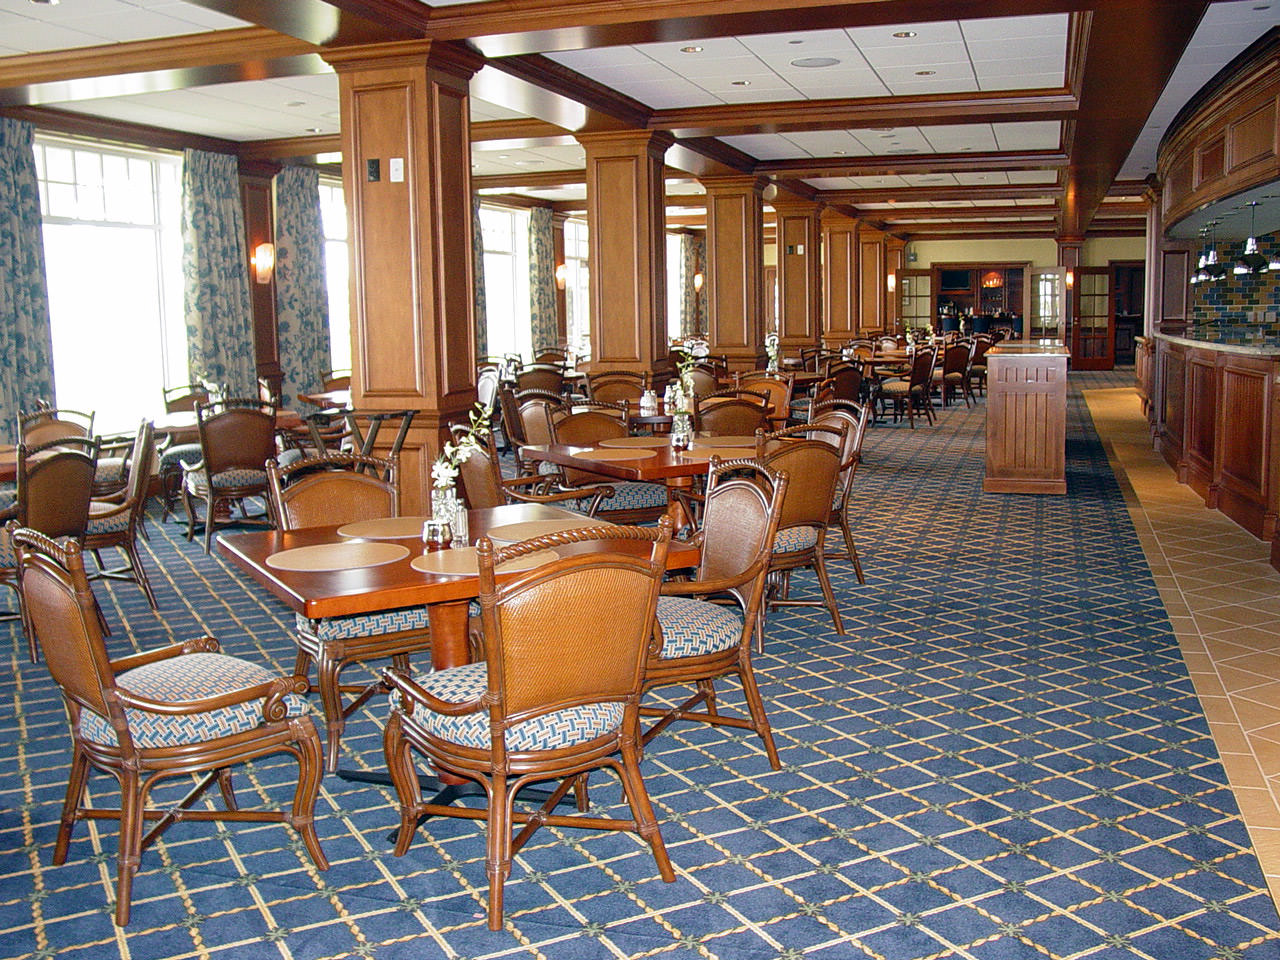 13 The Grille Room